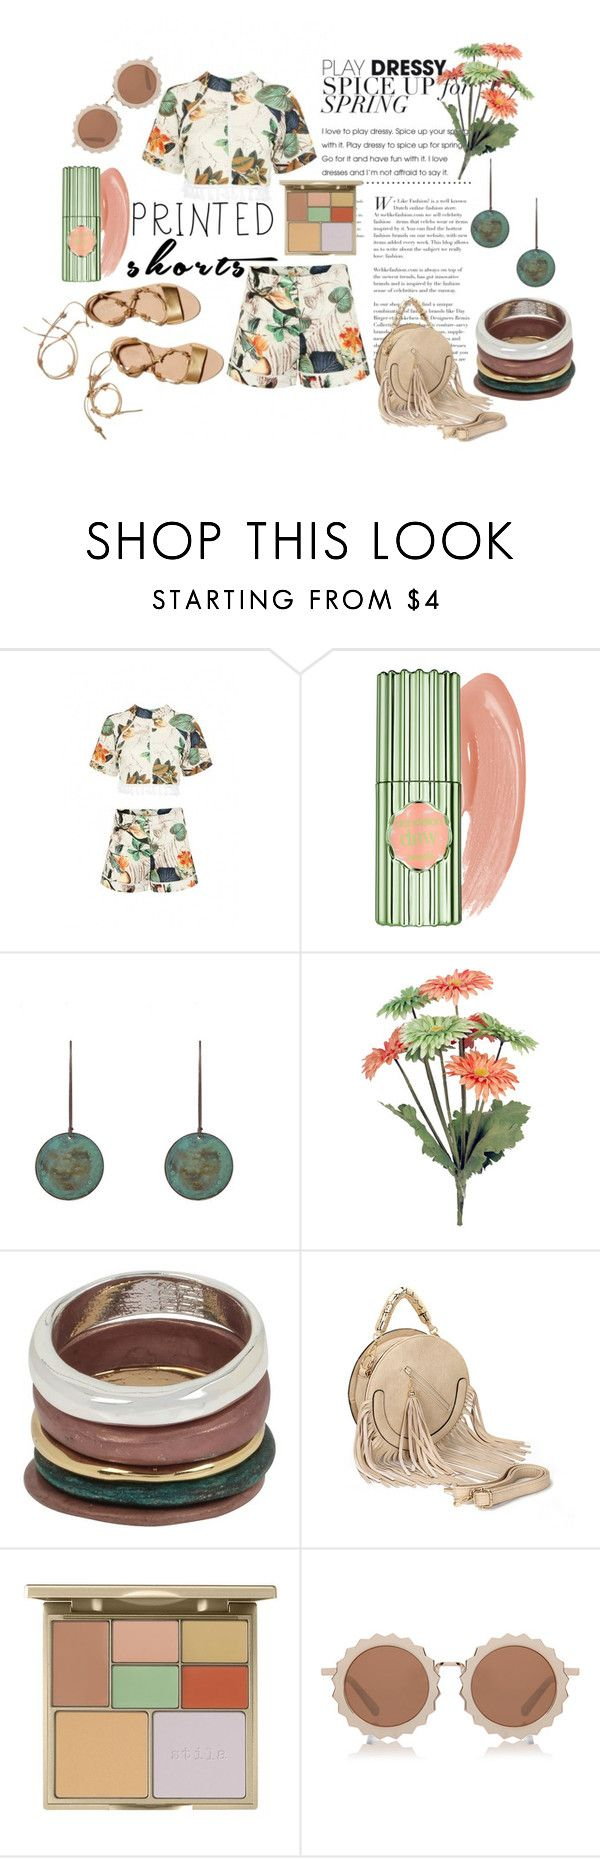 """""""Prints Charming: A Shorts Story"""" by love-blair-serena ❤ liked on Polyvore featuring Benefit, Loeffler Randall, Robert Lee Morris, Stila, House of Holland and printedshorts"""